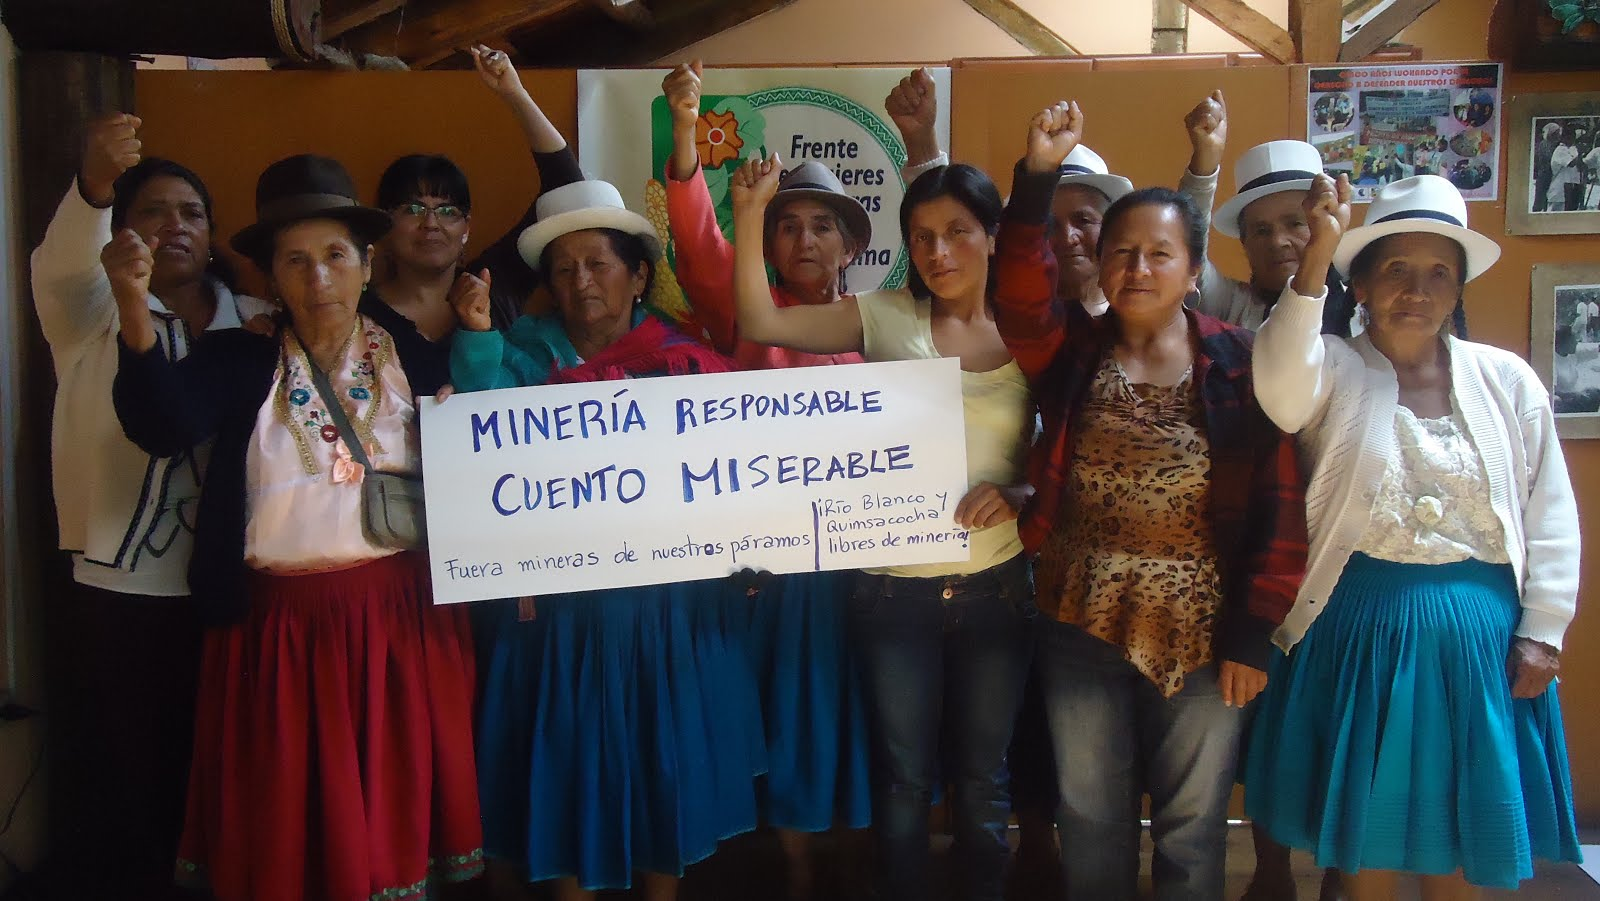 """Minería responsable, cuento miserable"""